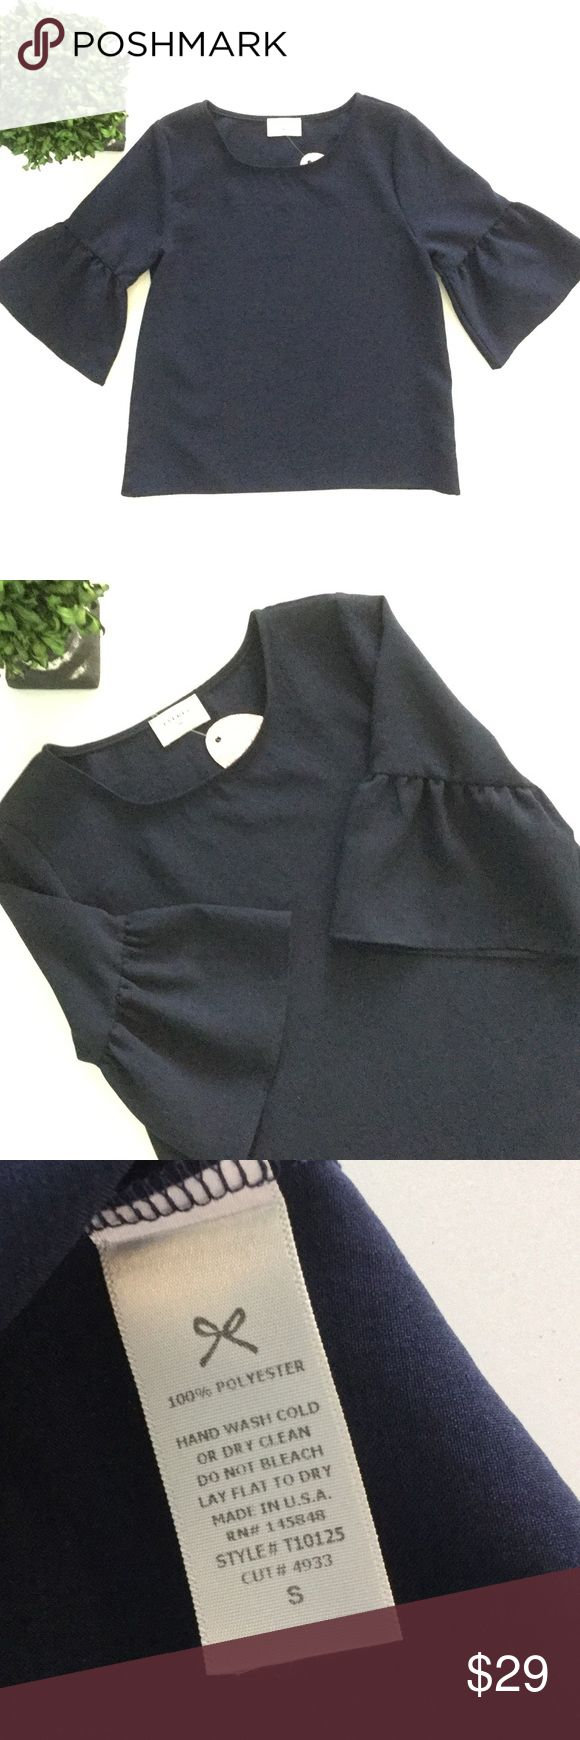 """✨NWT✨ EVERLY Navy Bell Sleeve Top ✨NWT✨ EVERLY navy top with bell sleeves. Chest: 17 1/2"""". Length: 22"""". Super cute top. Everly Tops Blouses"""